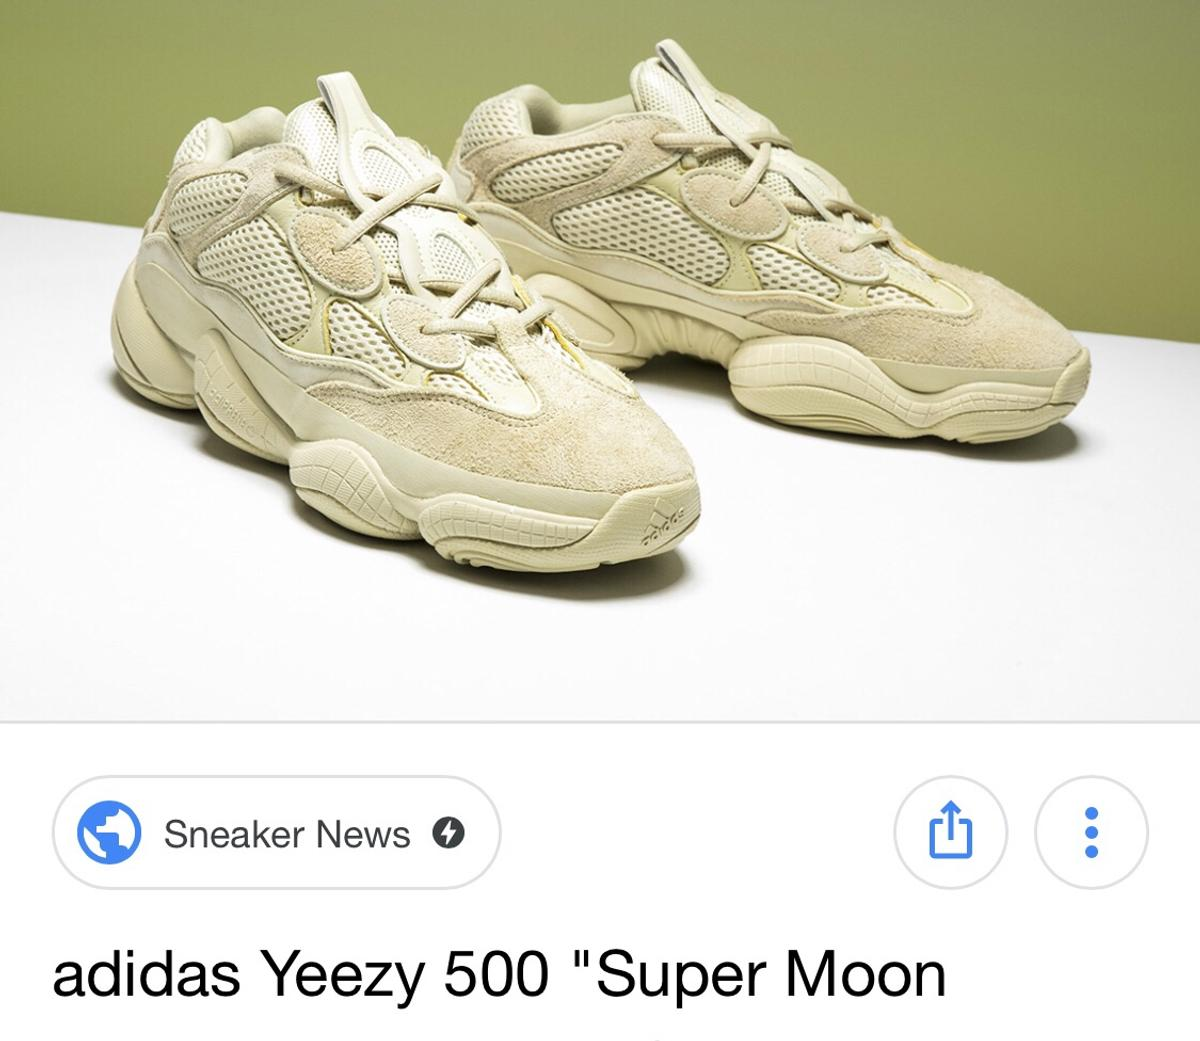 c8bf3004e70 Adidas yeezy boost 500 yellow moon uk7.5 in SW3 Chelsea for £225.00 ...